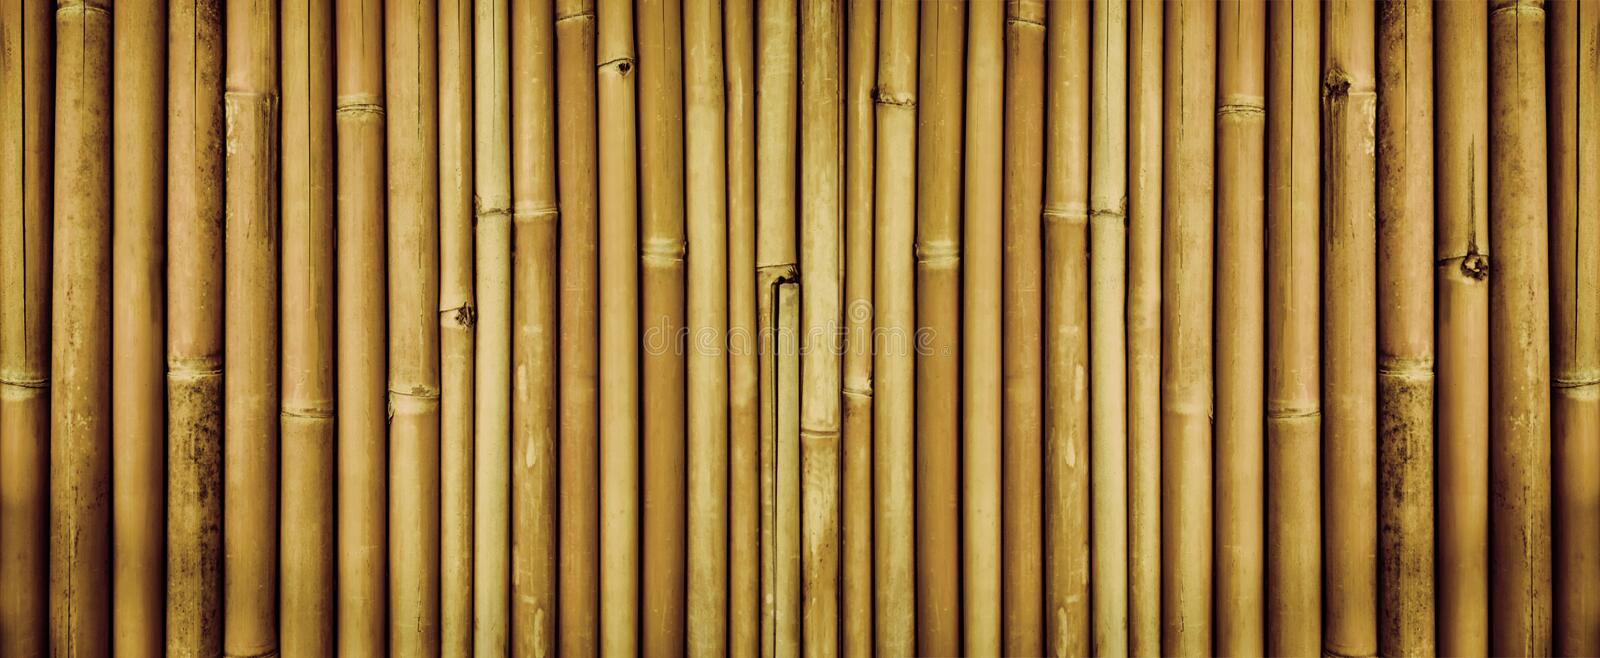 Yellow dried bamboo fence texture, bamboo texture background royalty free stock images